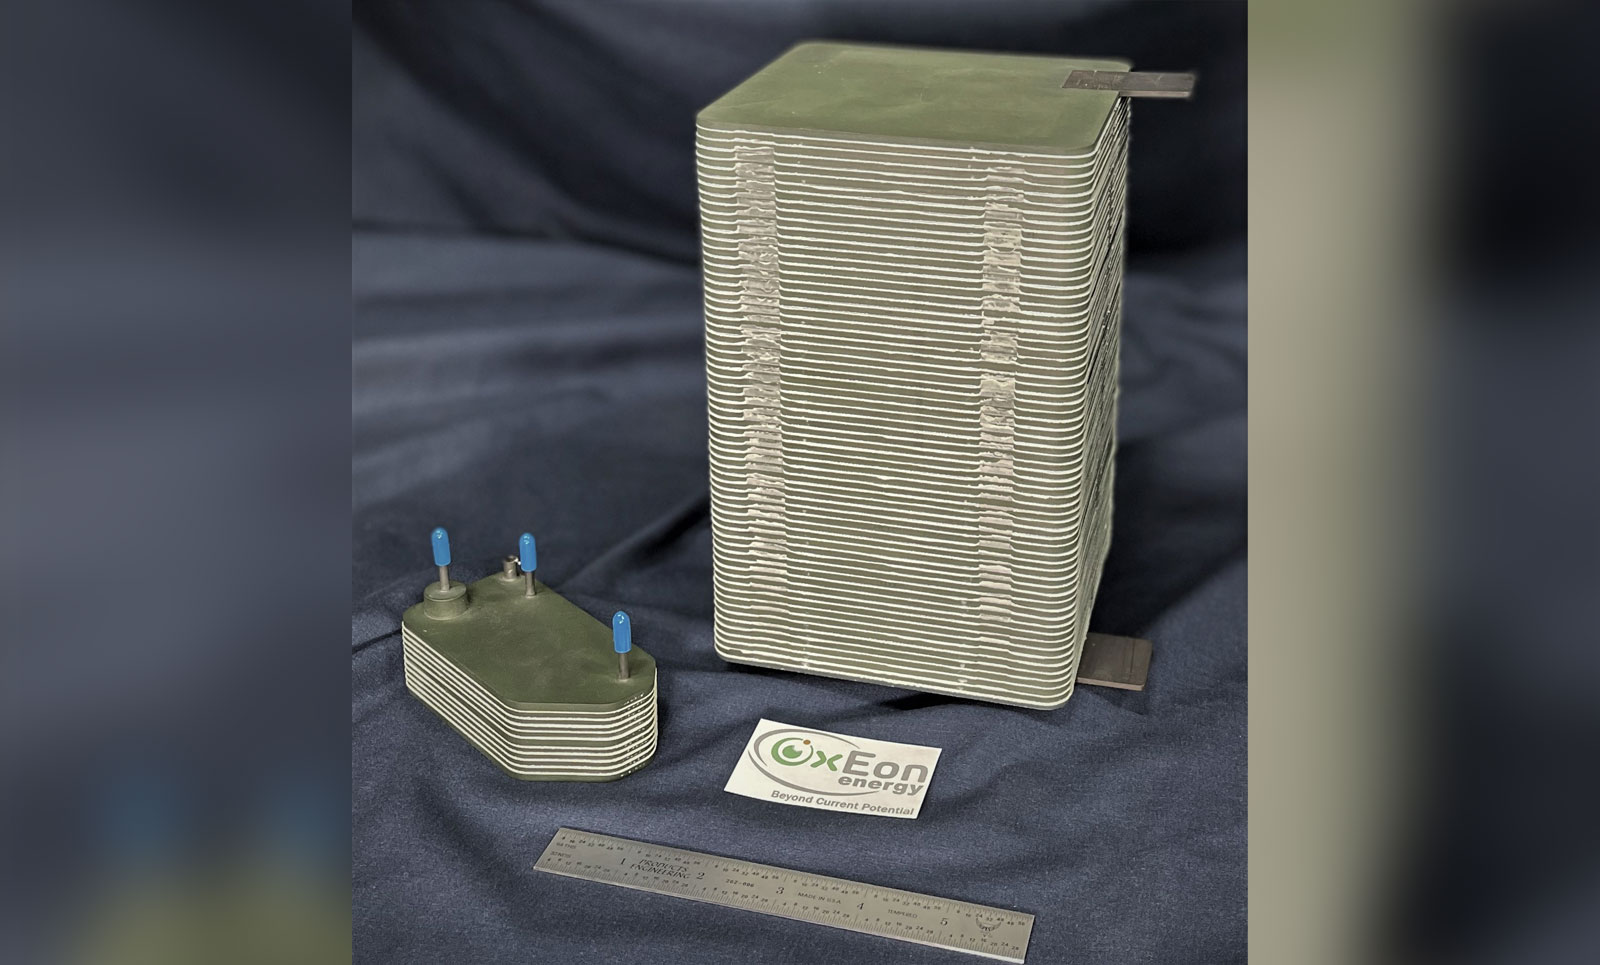 Solid Oxide Fuel Stack